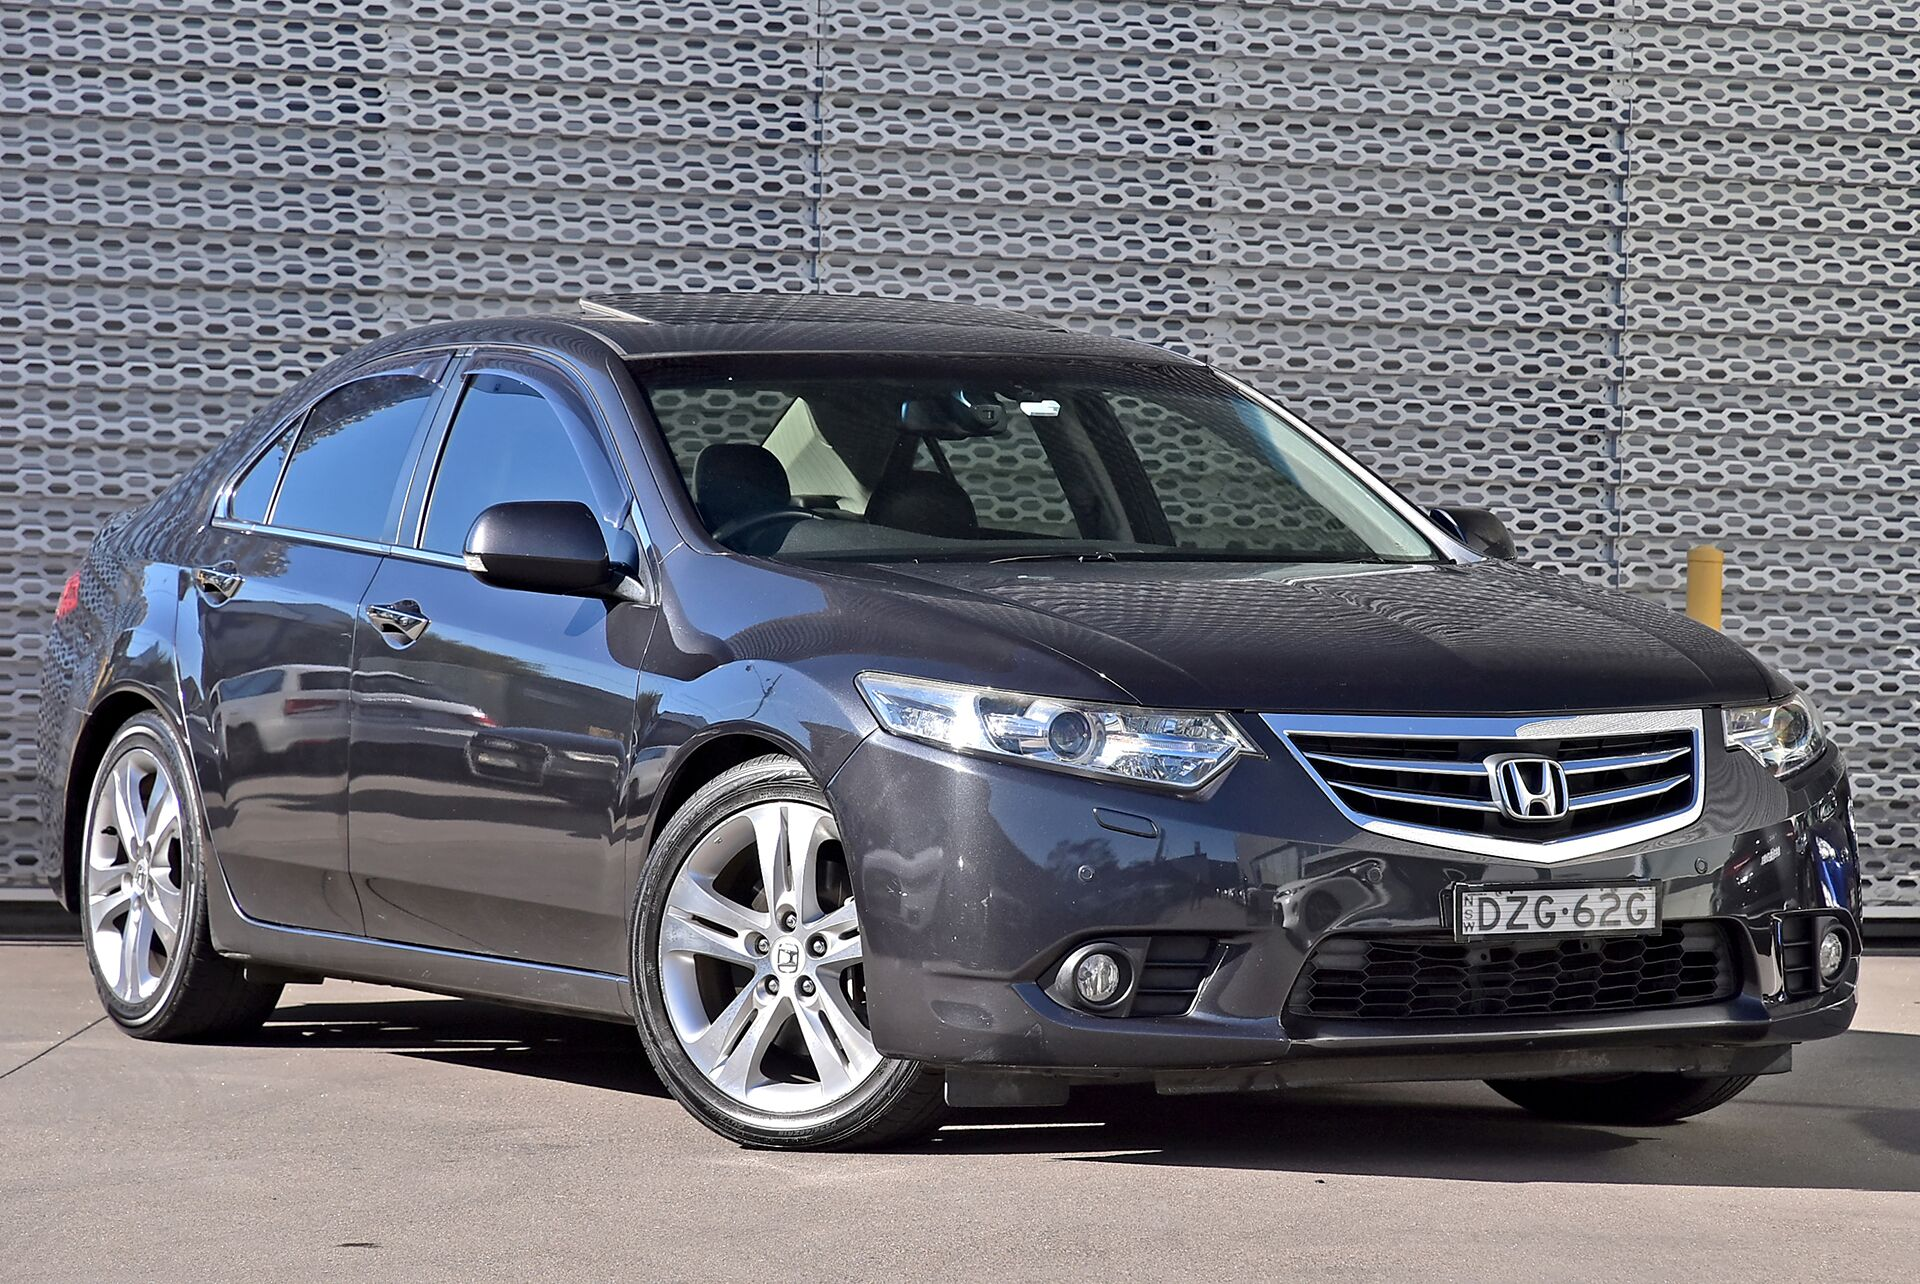 Picture of Jaime's 2012 Honda Accord